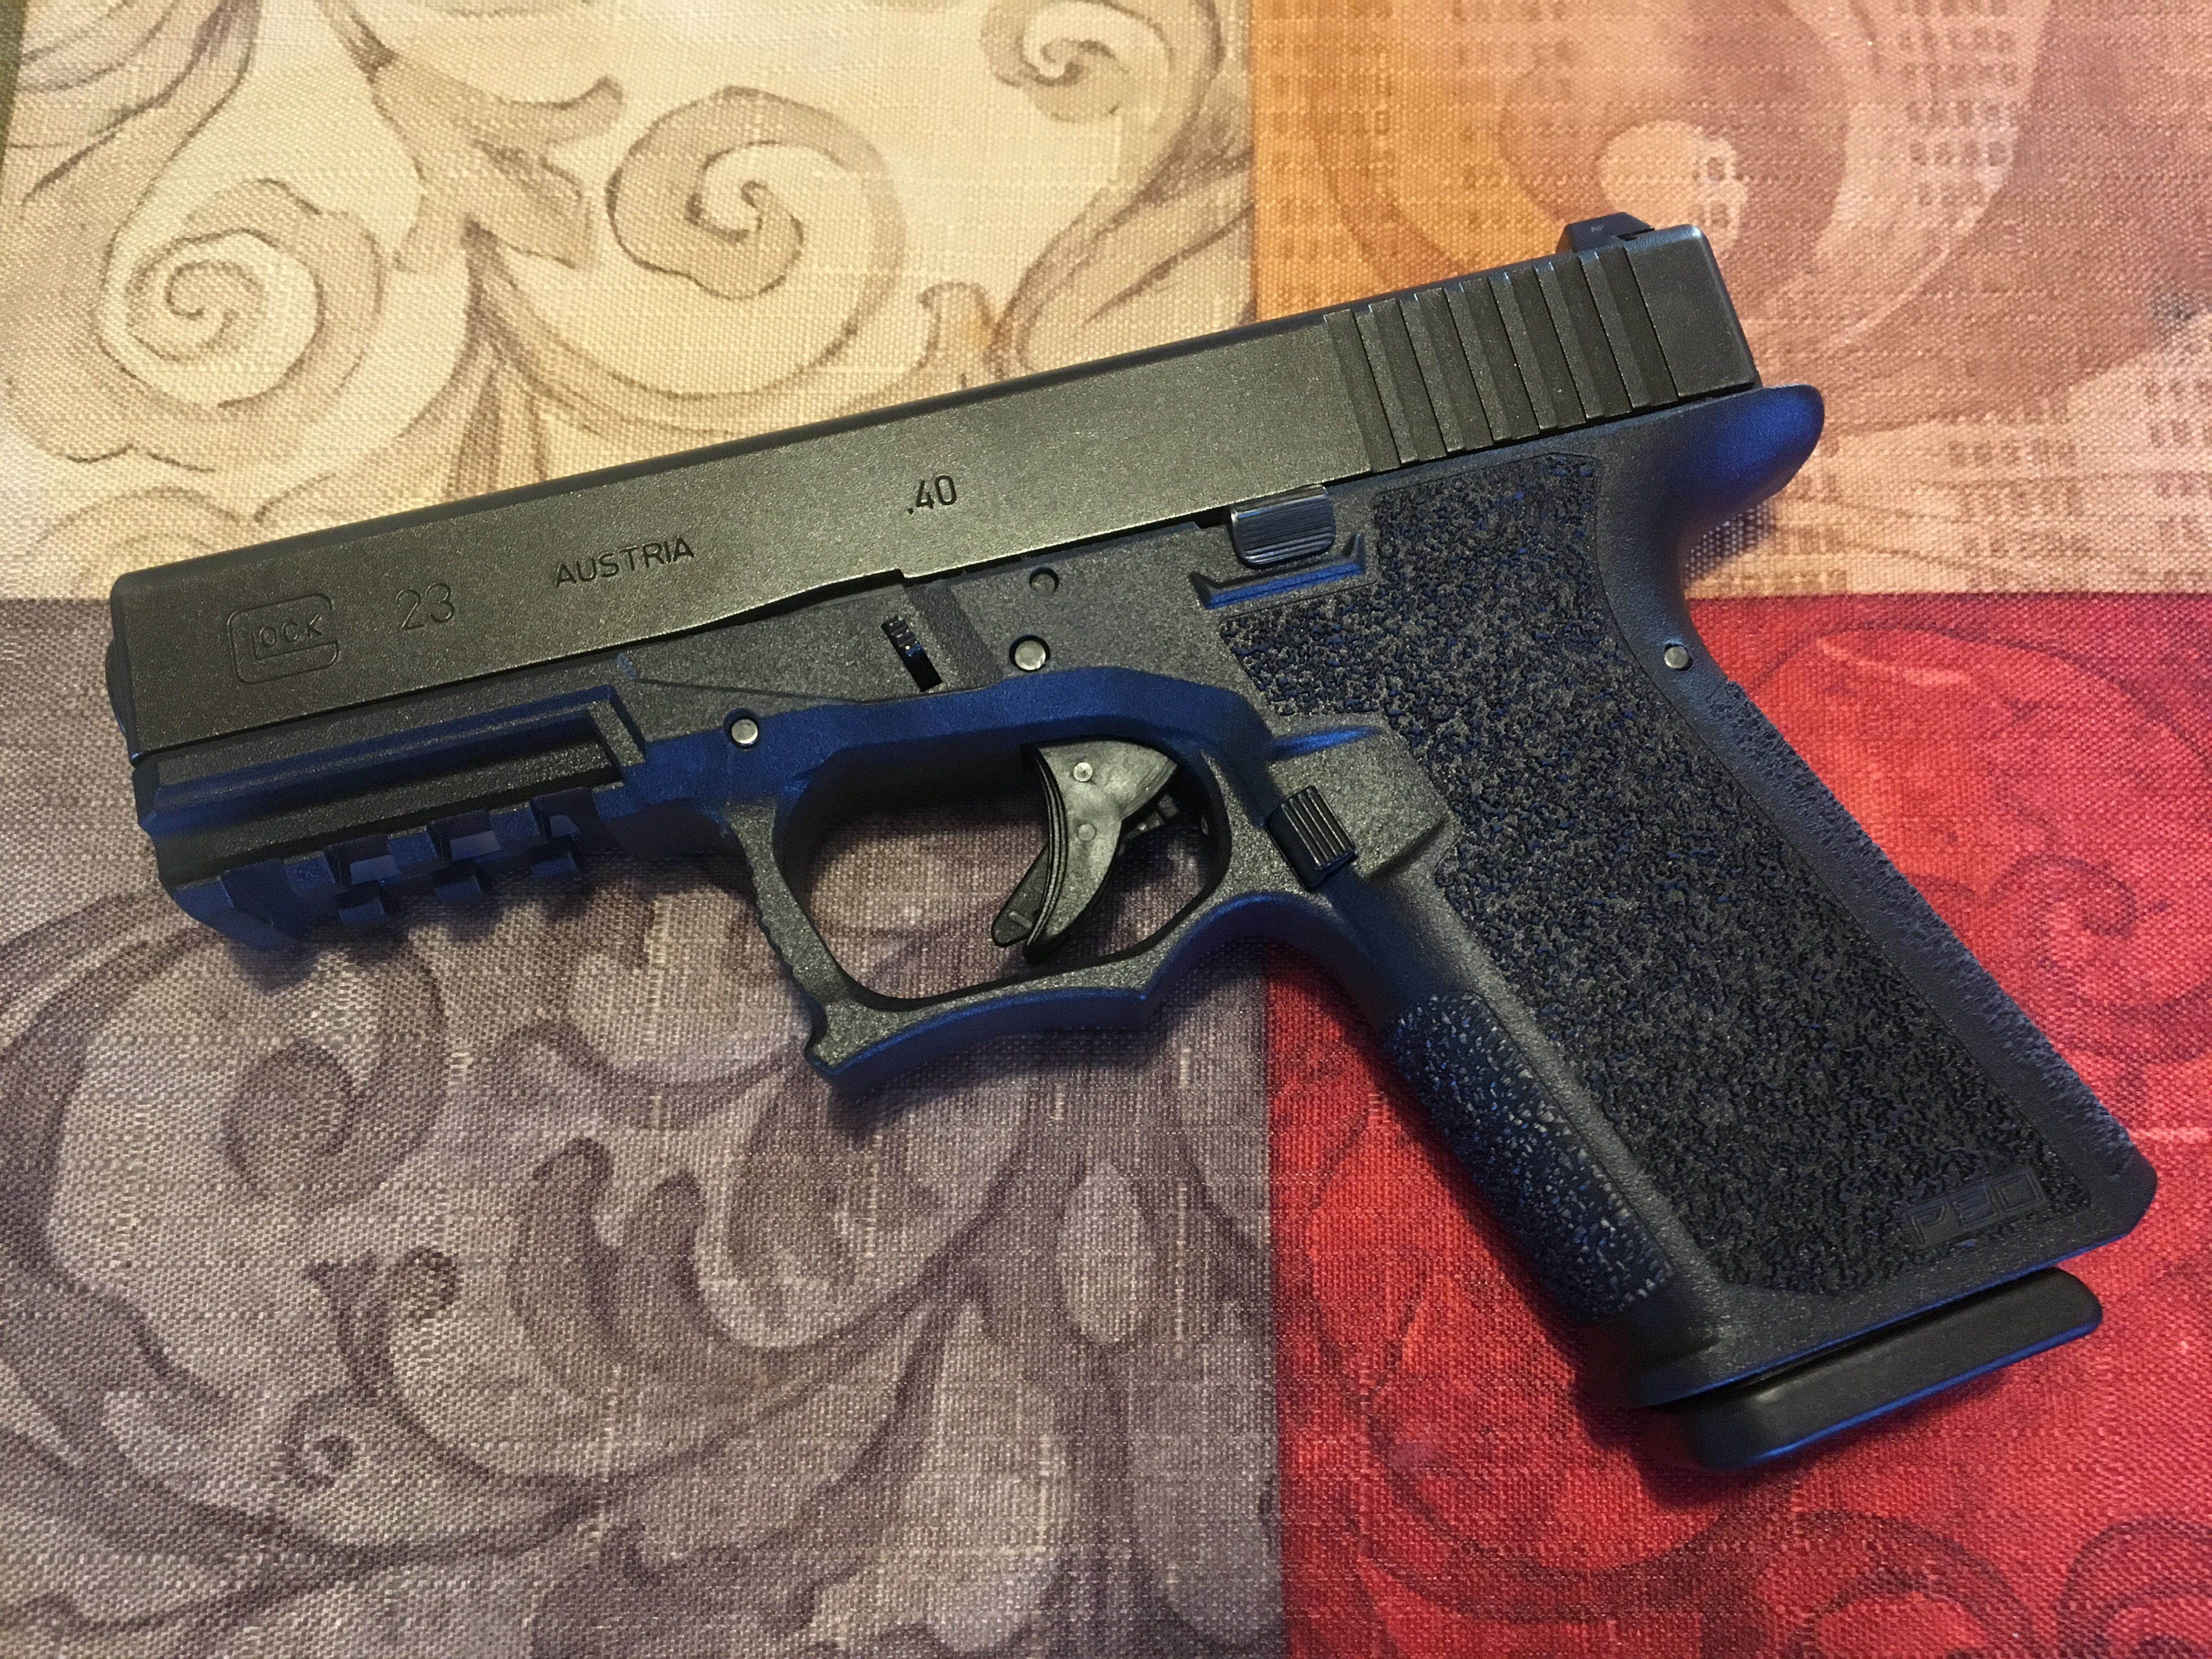 Built An 80 Glock Finish It With 80percentglockcom G23 Parts Take Down Pinterest The Showed Little Wear Slide Stop Was Still All Black Every Thing Went Together Just As Should